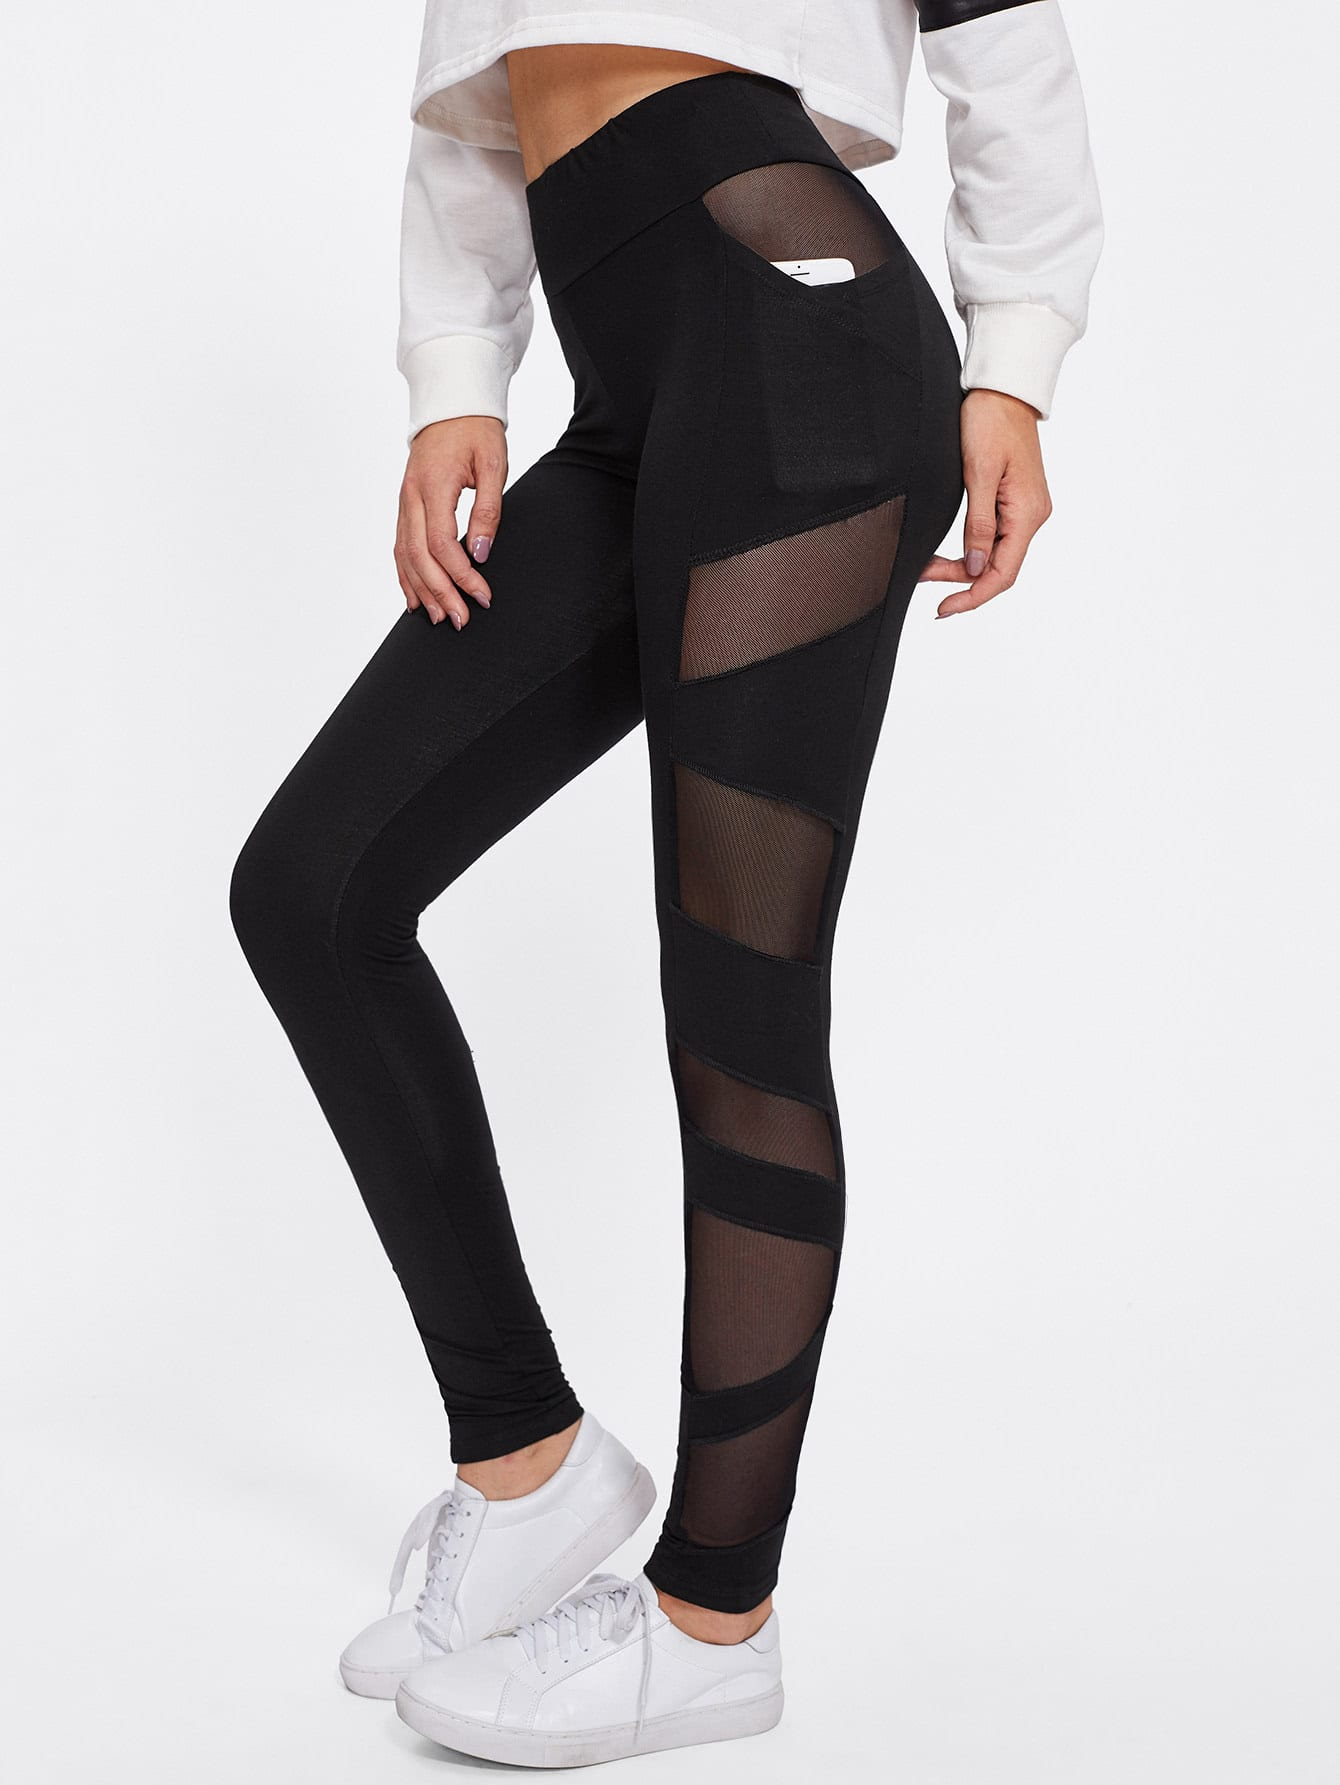 Sheer Mesh Panel Leggings sheer plus size mesh panel workout leggings